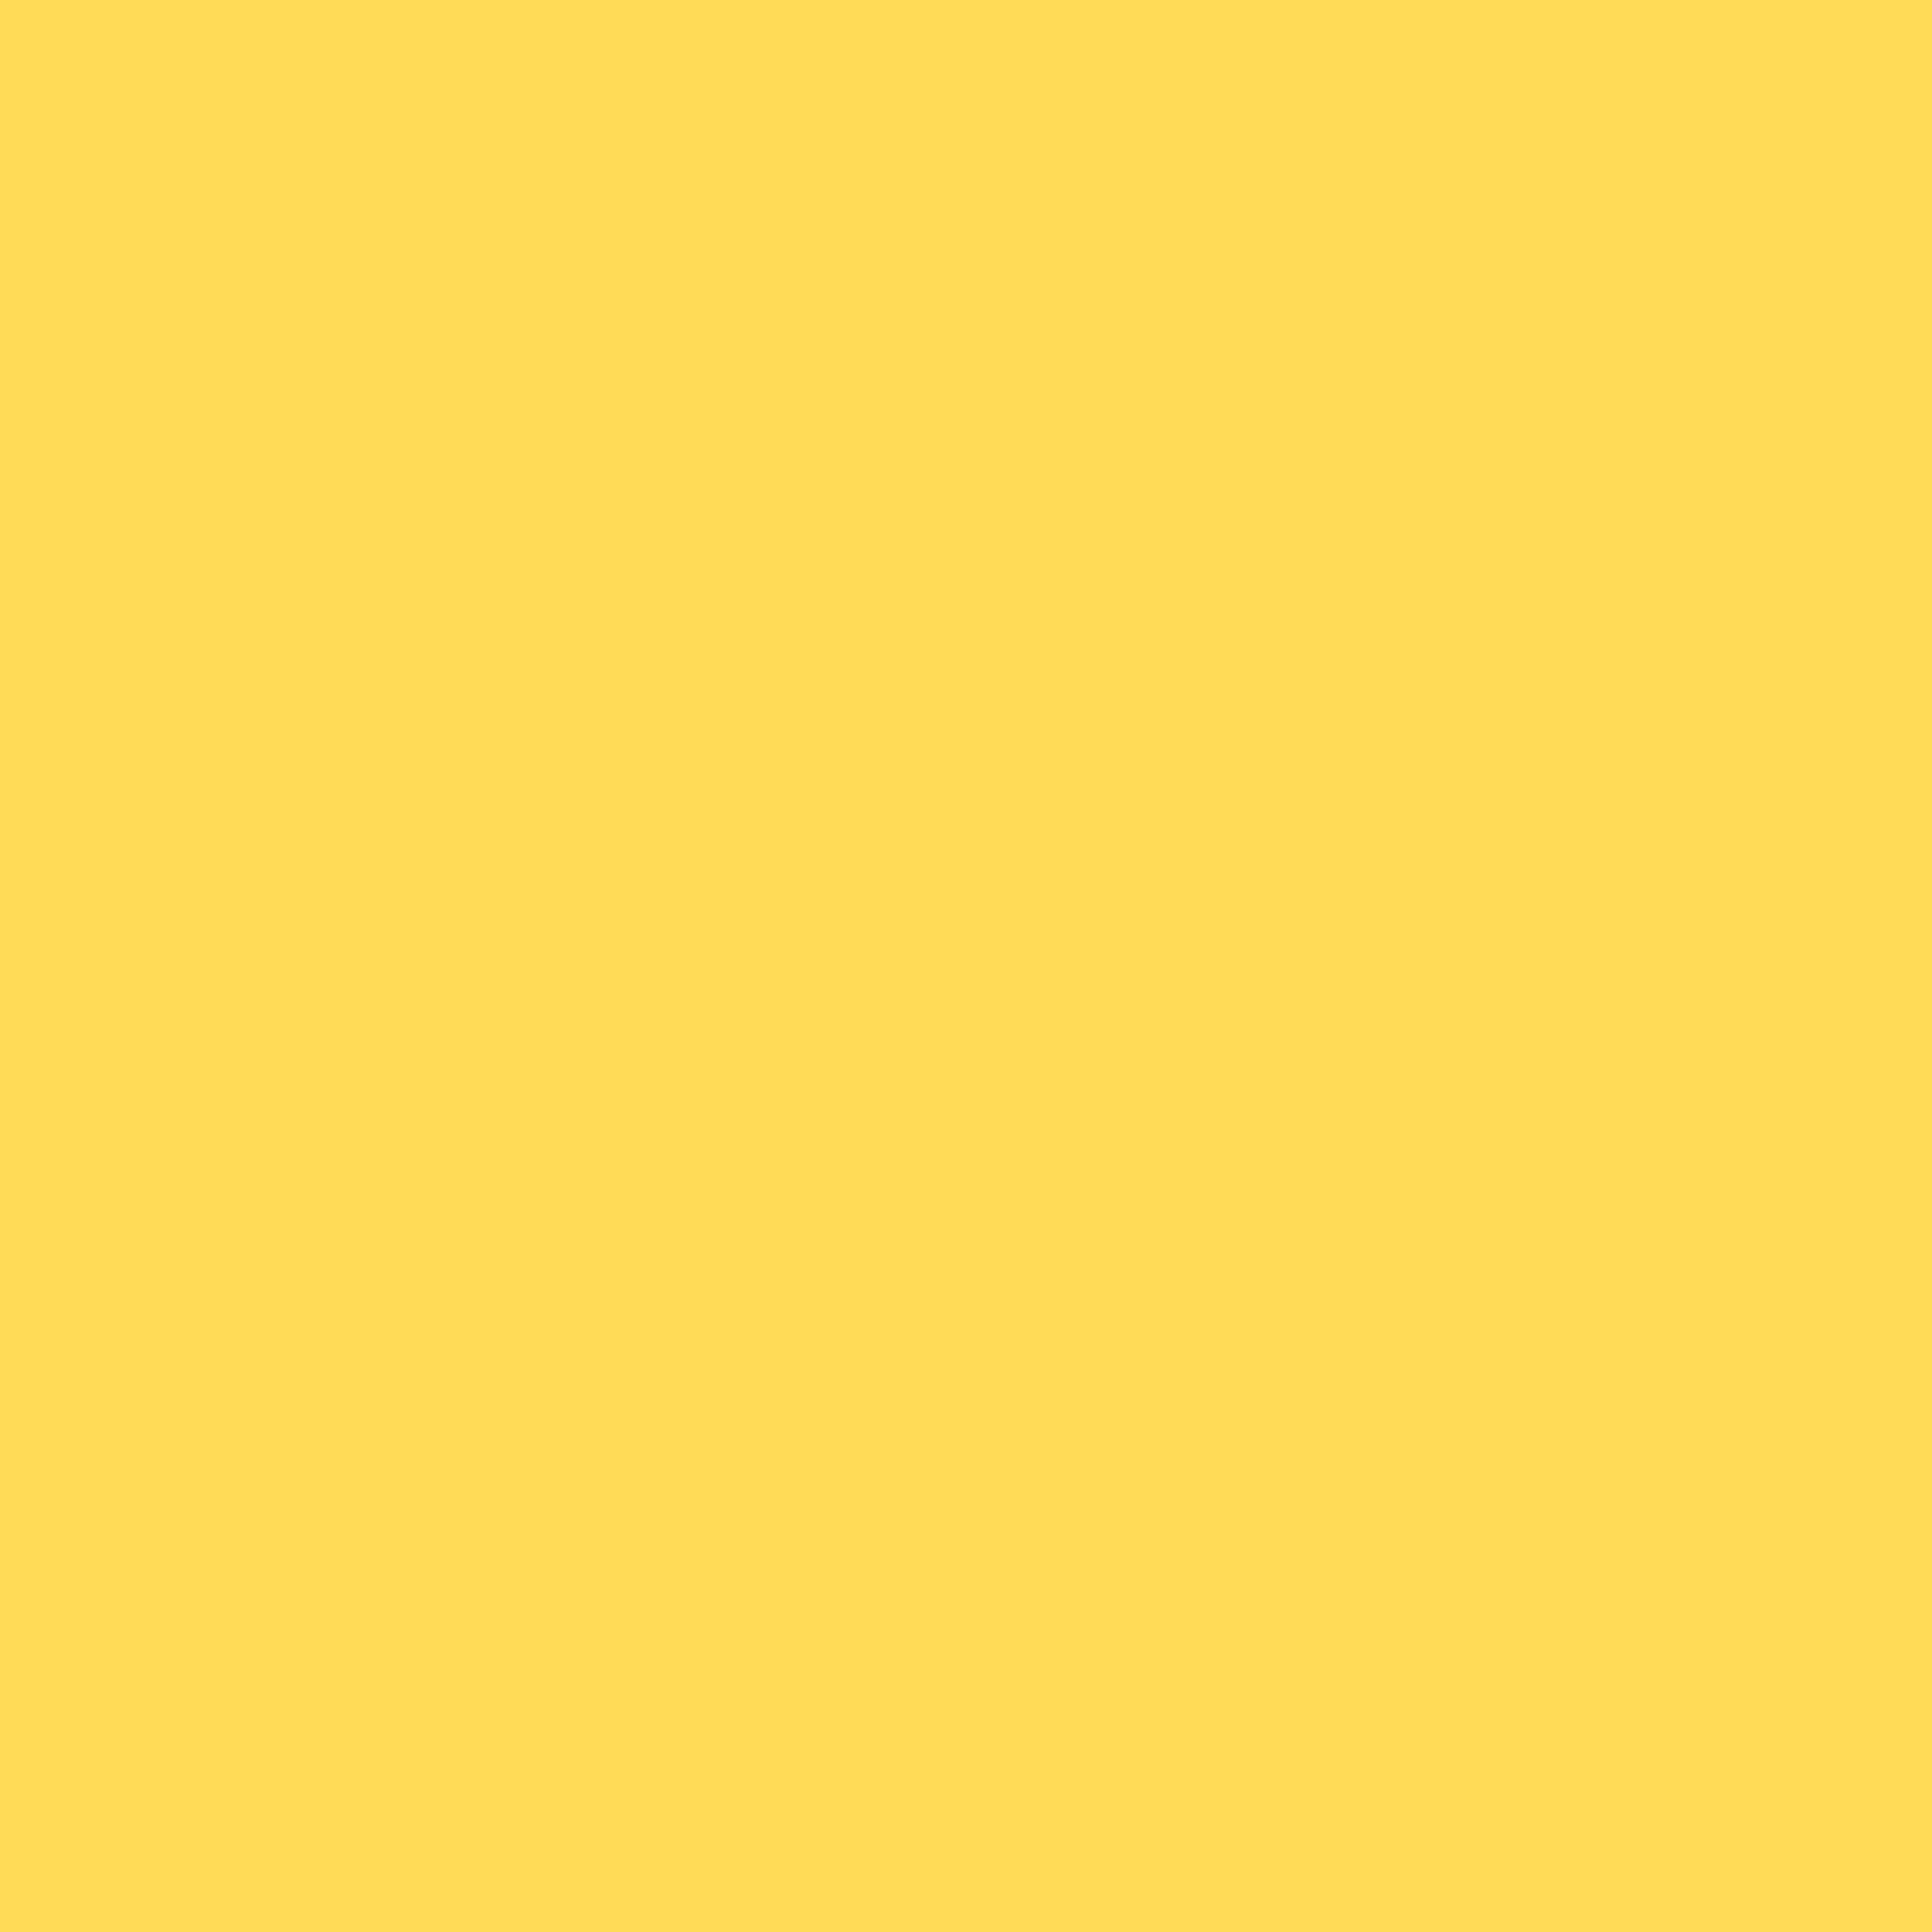 2732x2732 Mustard Solid Color Background